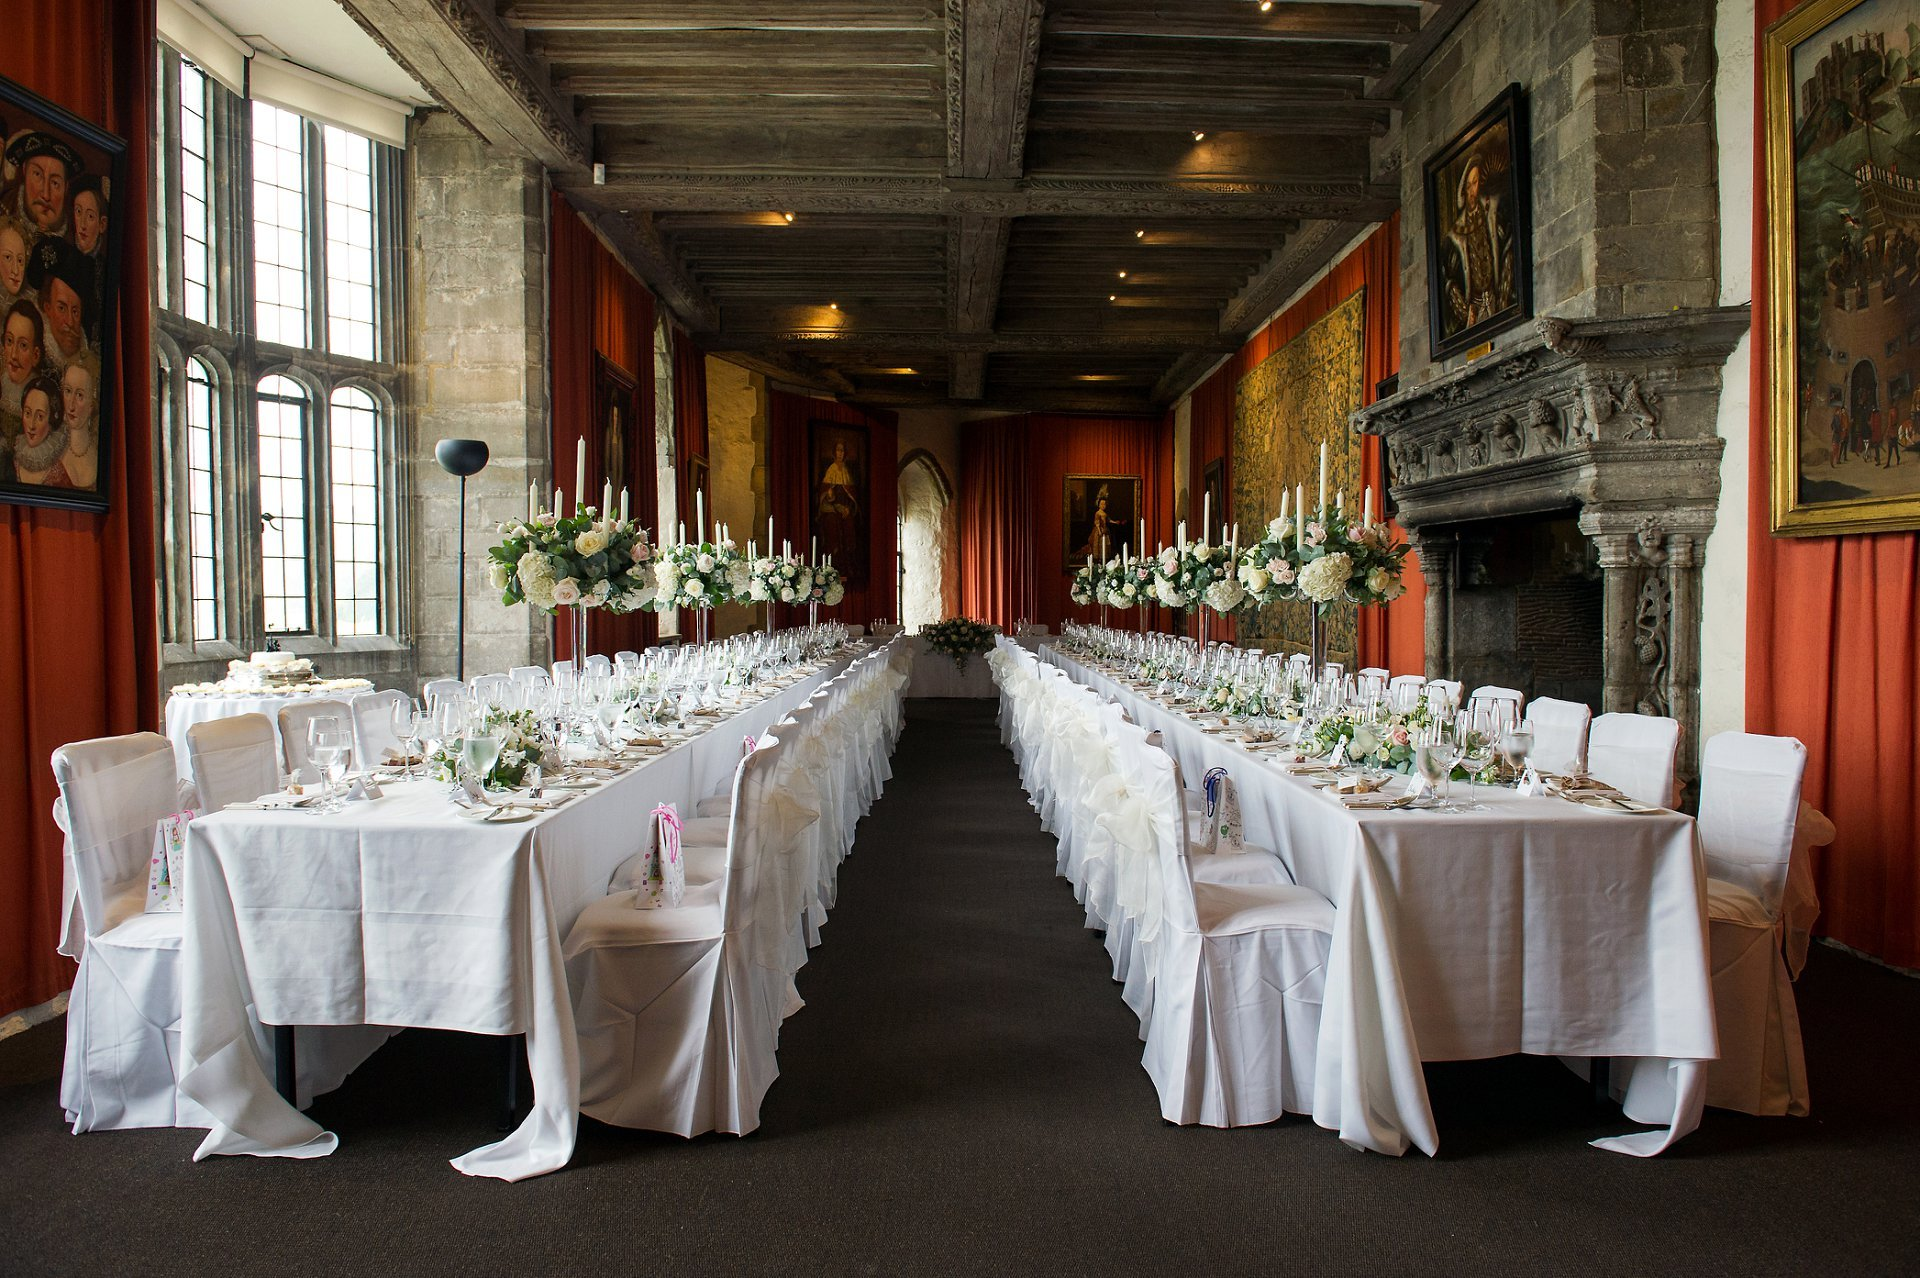 Henry VIII Banqueting Hall dining room at Leeds Castle laid for a wedding breakfast photographed by Leeds Castle wedding photogrpaher Emma Duggan